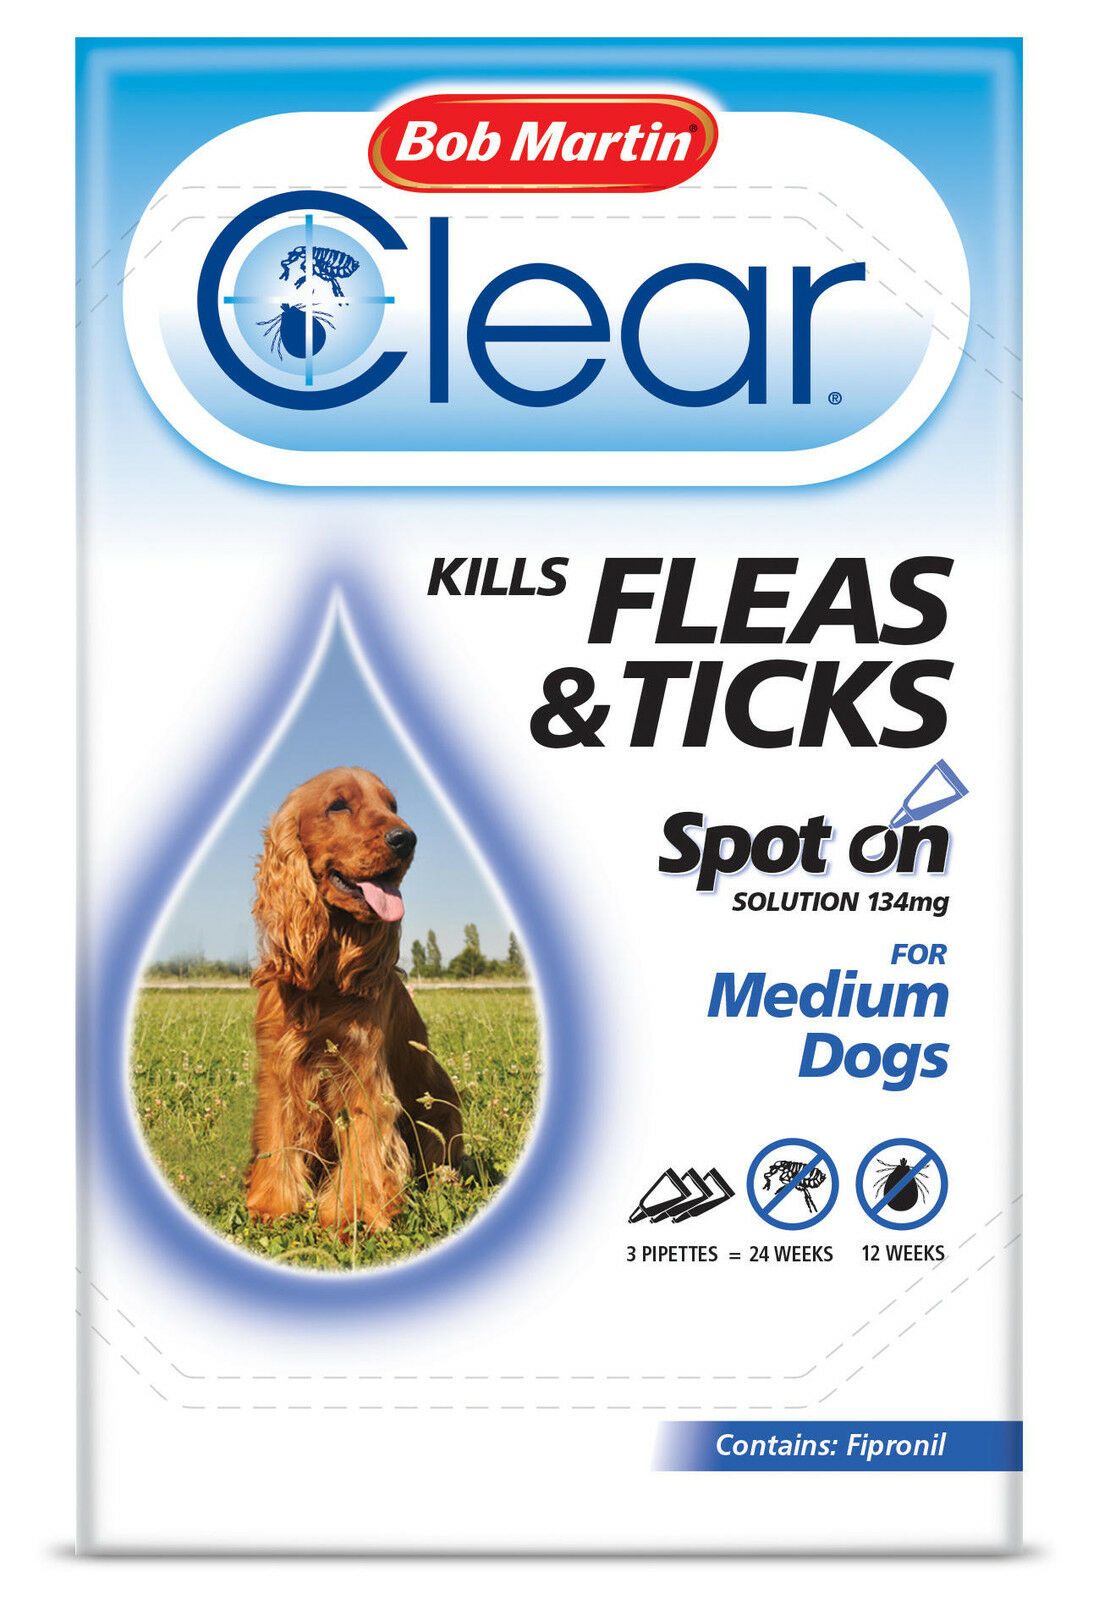 Bob Martin Clear Spot On Solution 3 x 134mg for Medium Dogs, Kills Fleas & Ticks